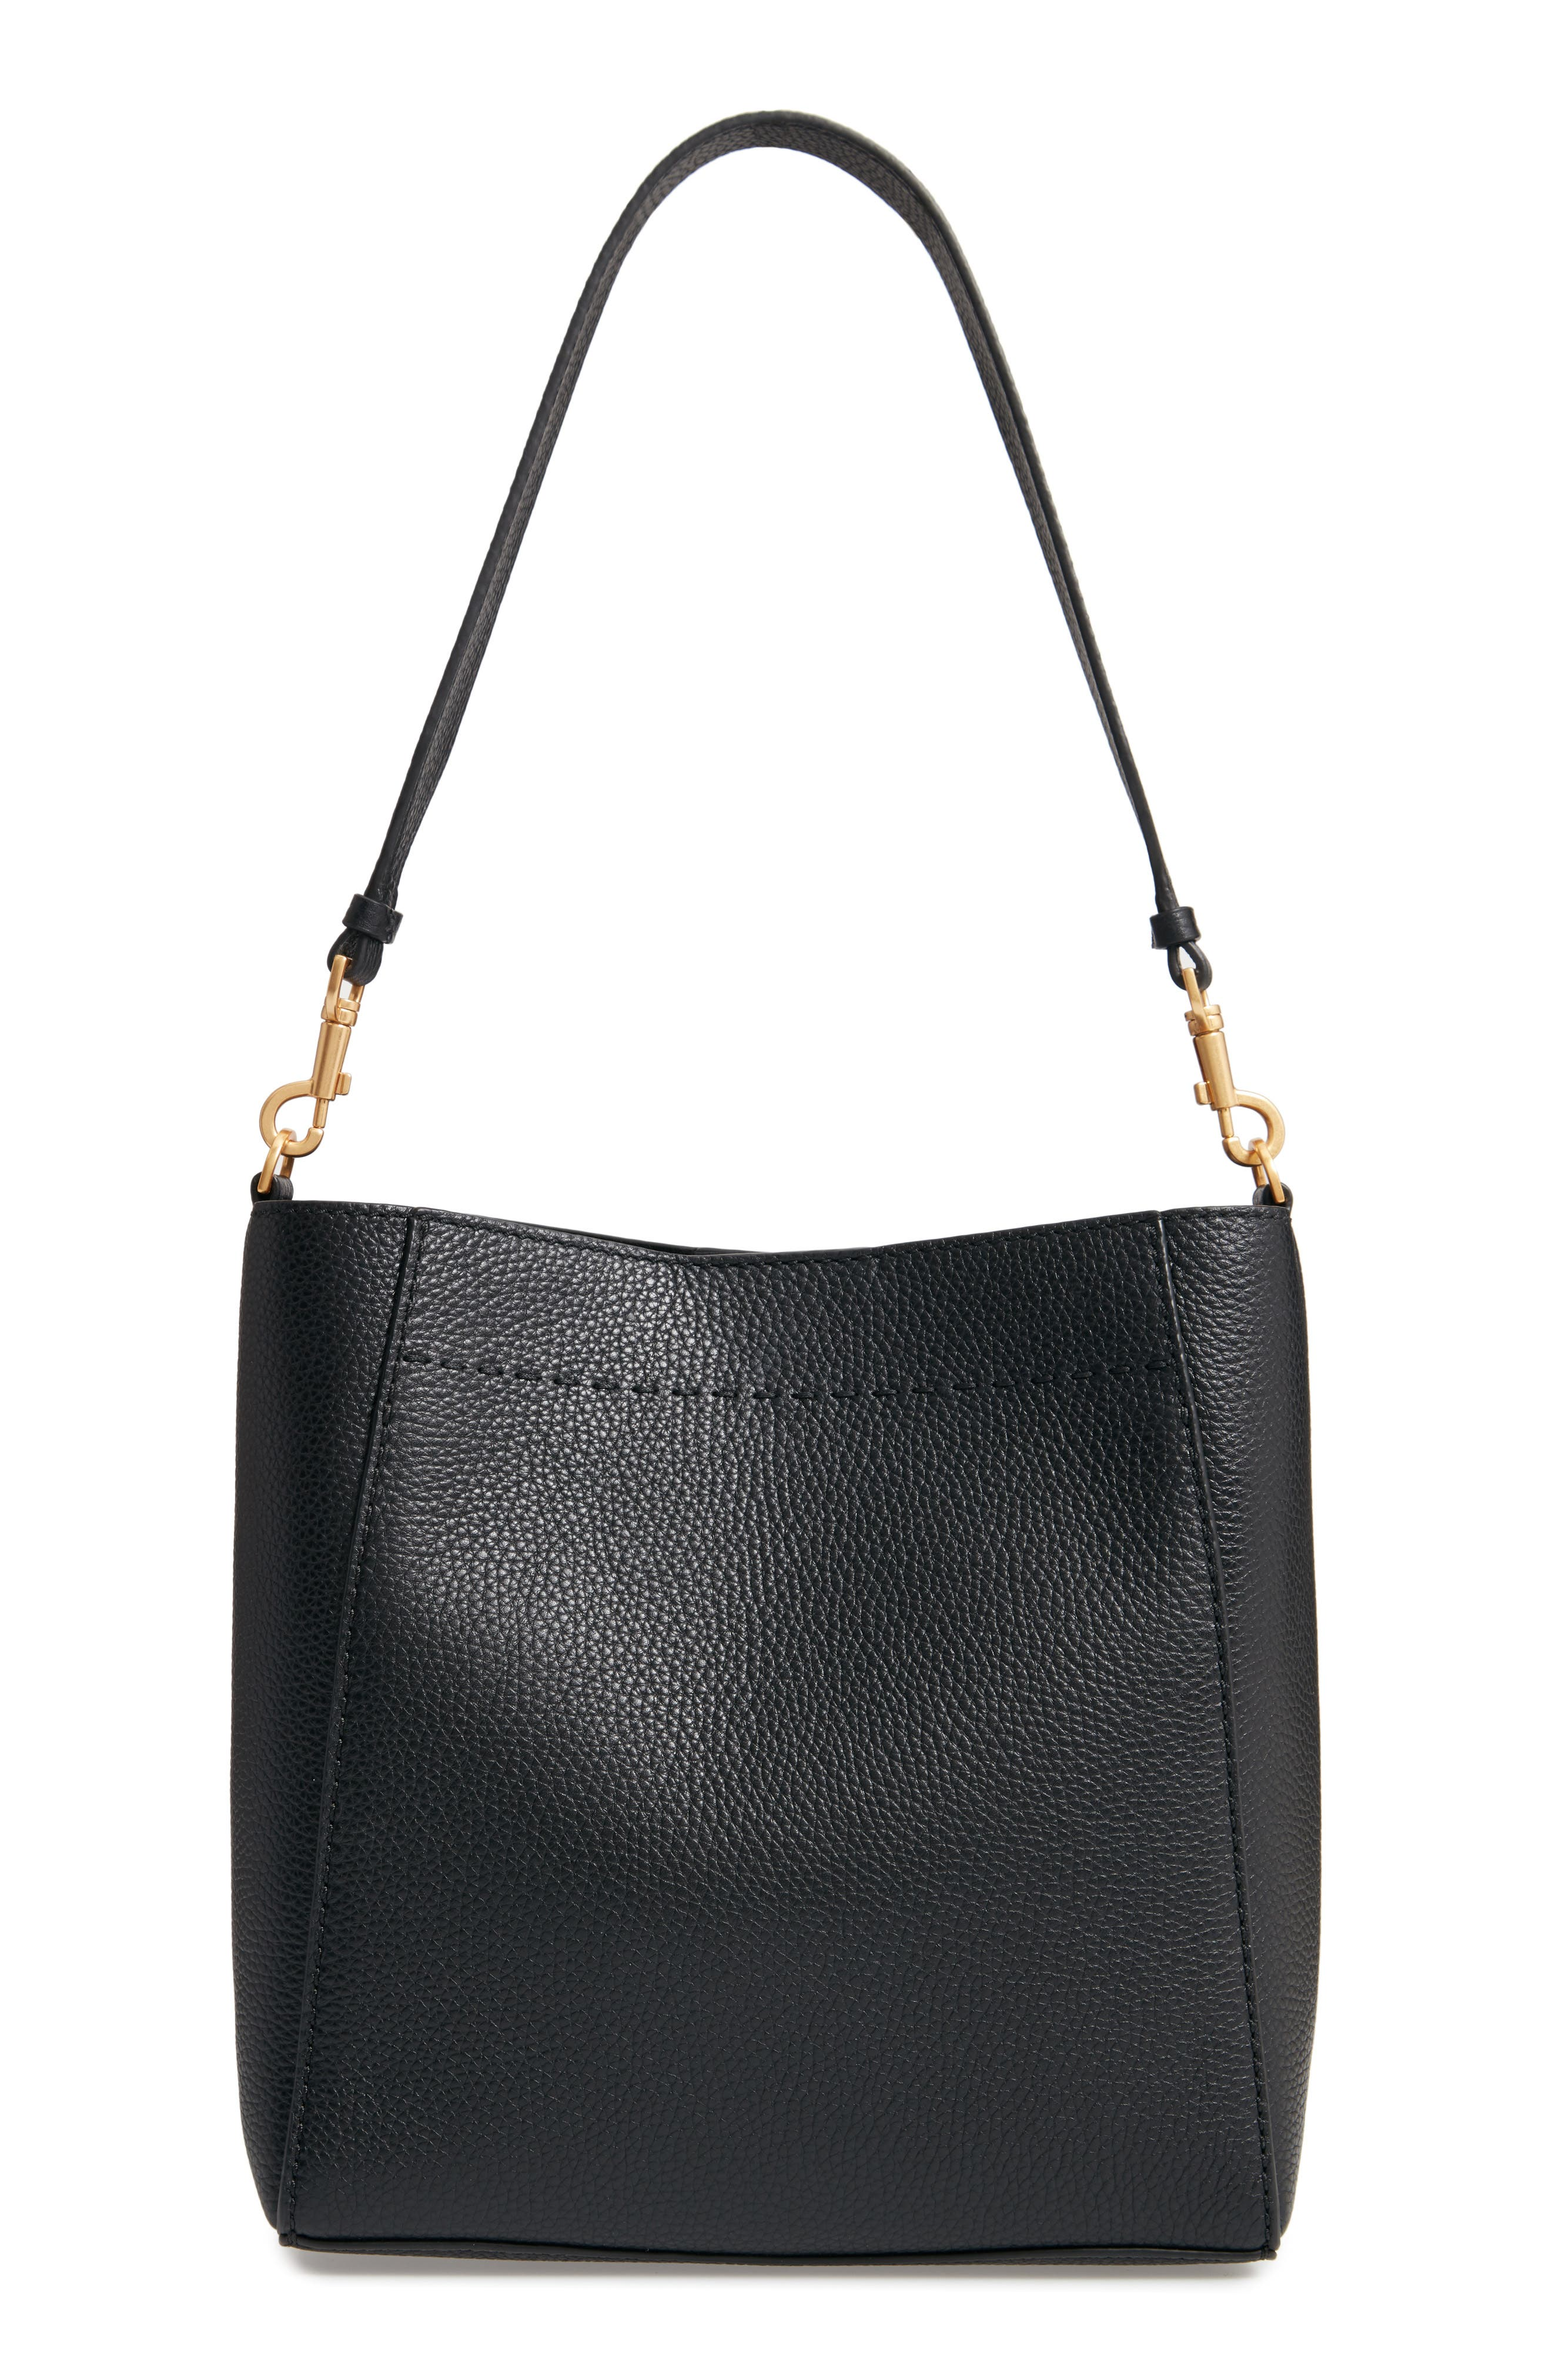 TORY BURCH, McGraw Leather Hobo, Alternate thumbnail 5, color, BLACK